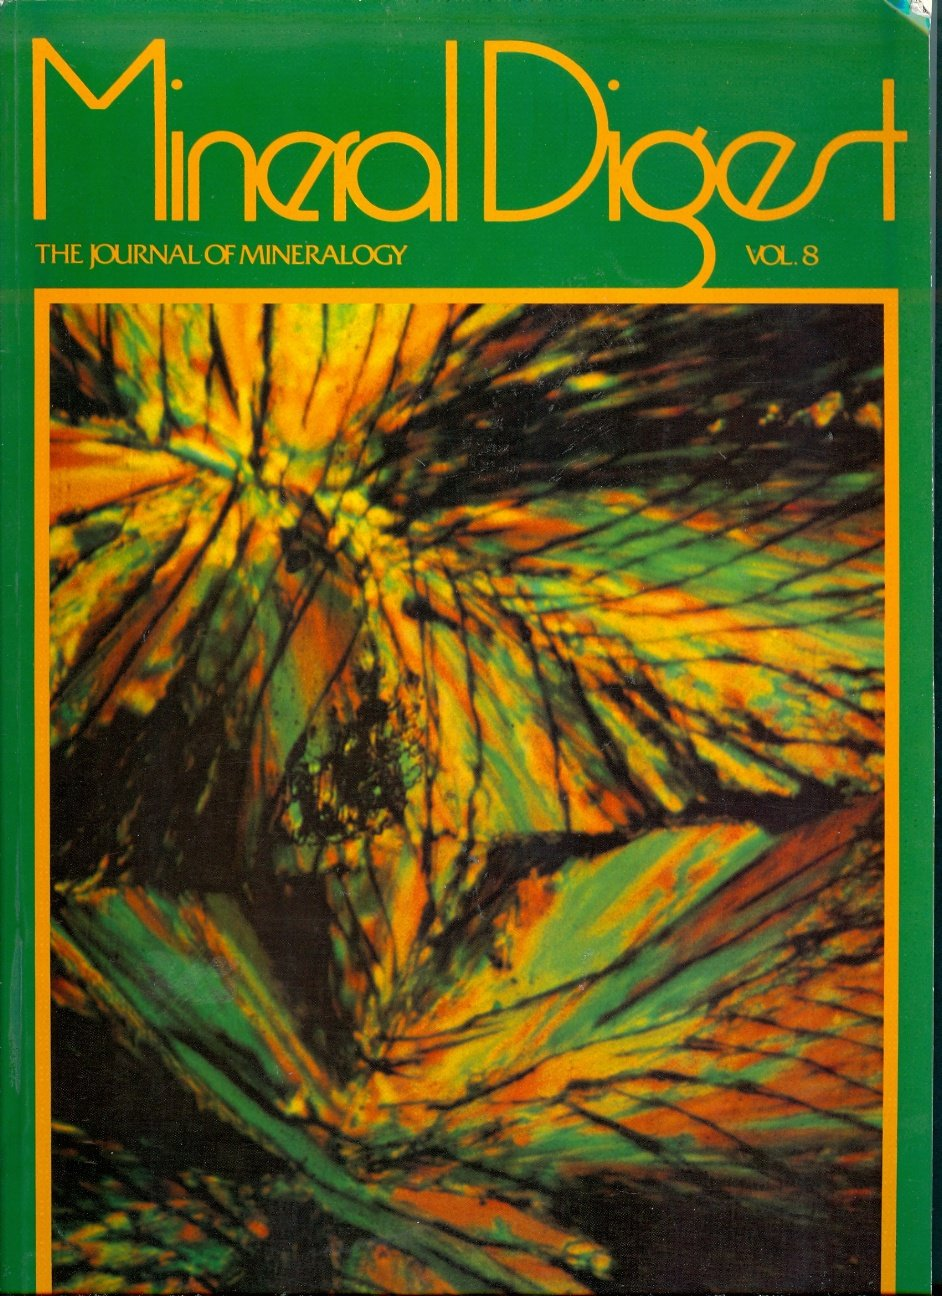 Mineral Digest (The Journal of Mineralogy, Volume 8)